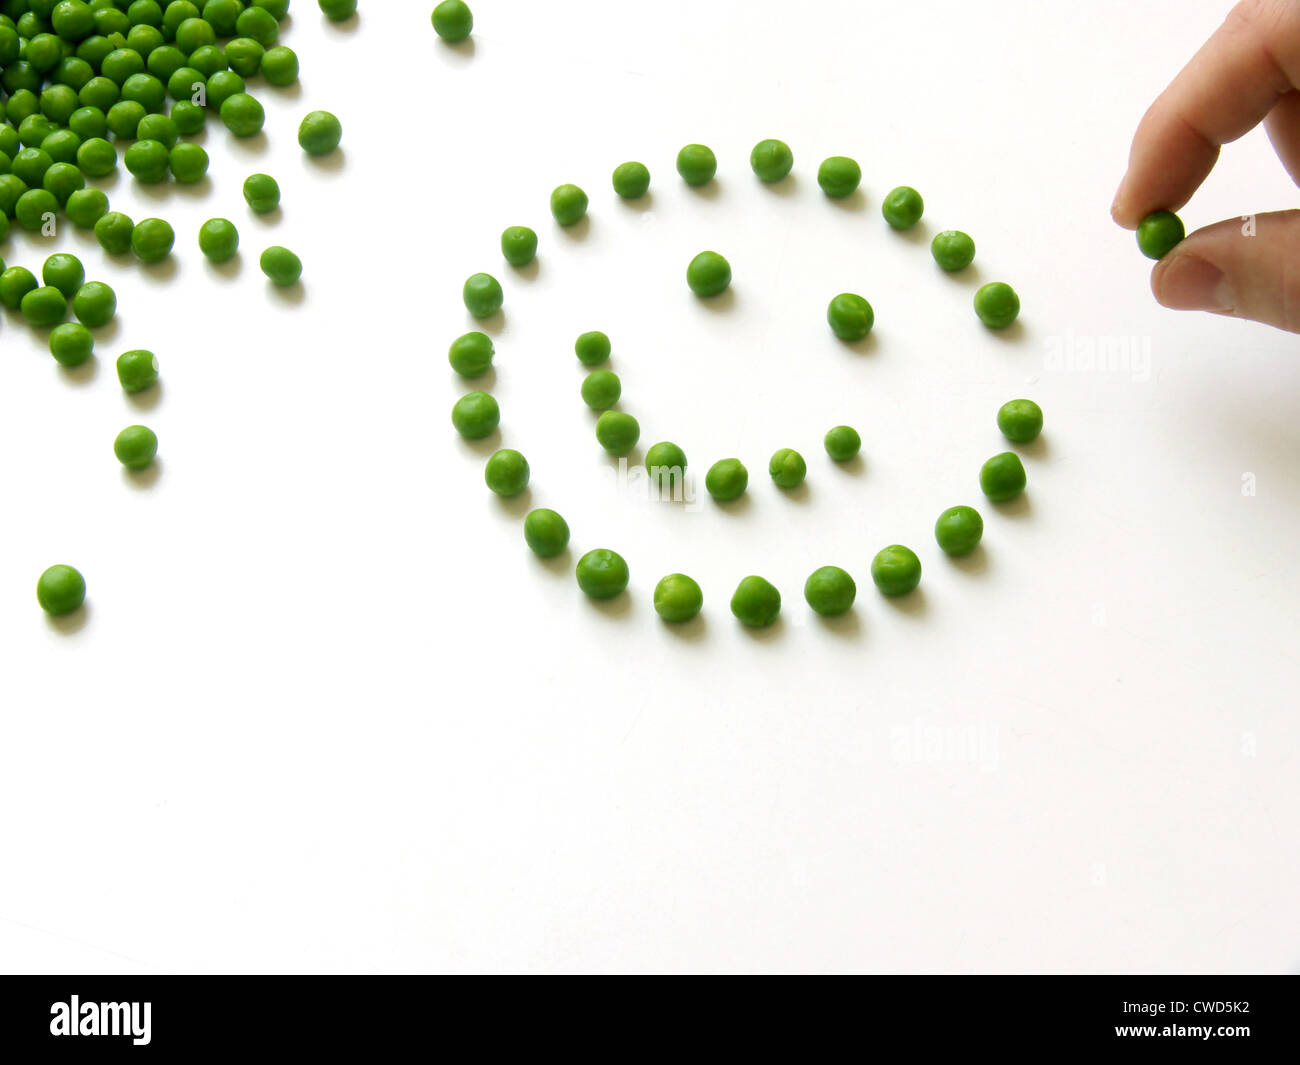 Smiley,famille des pois Photo Stock